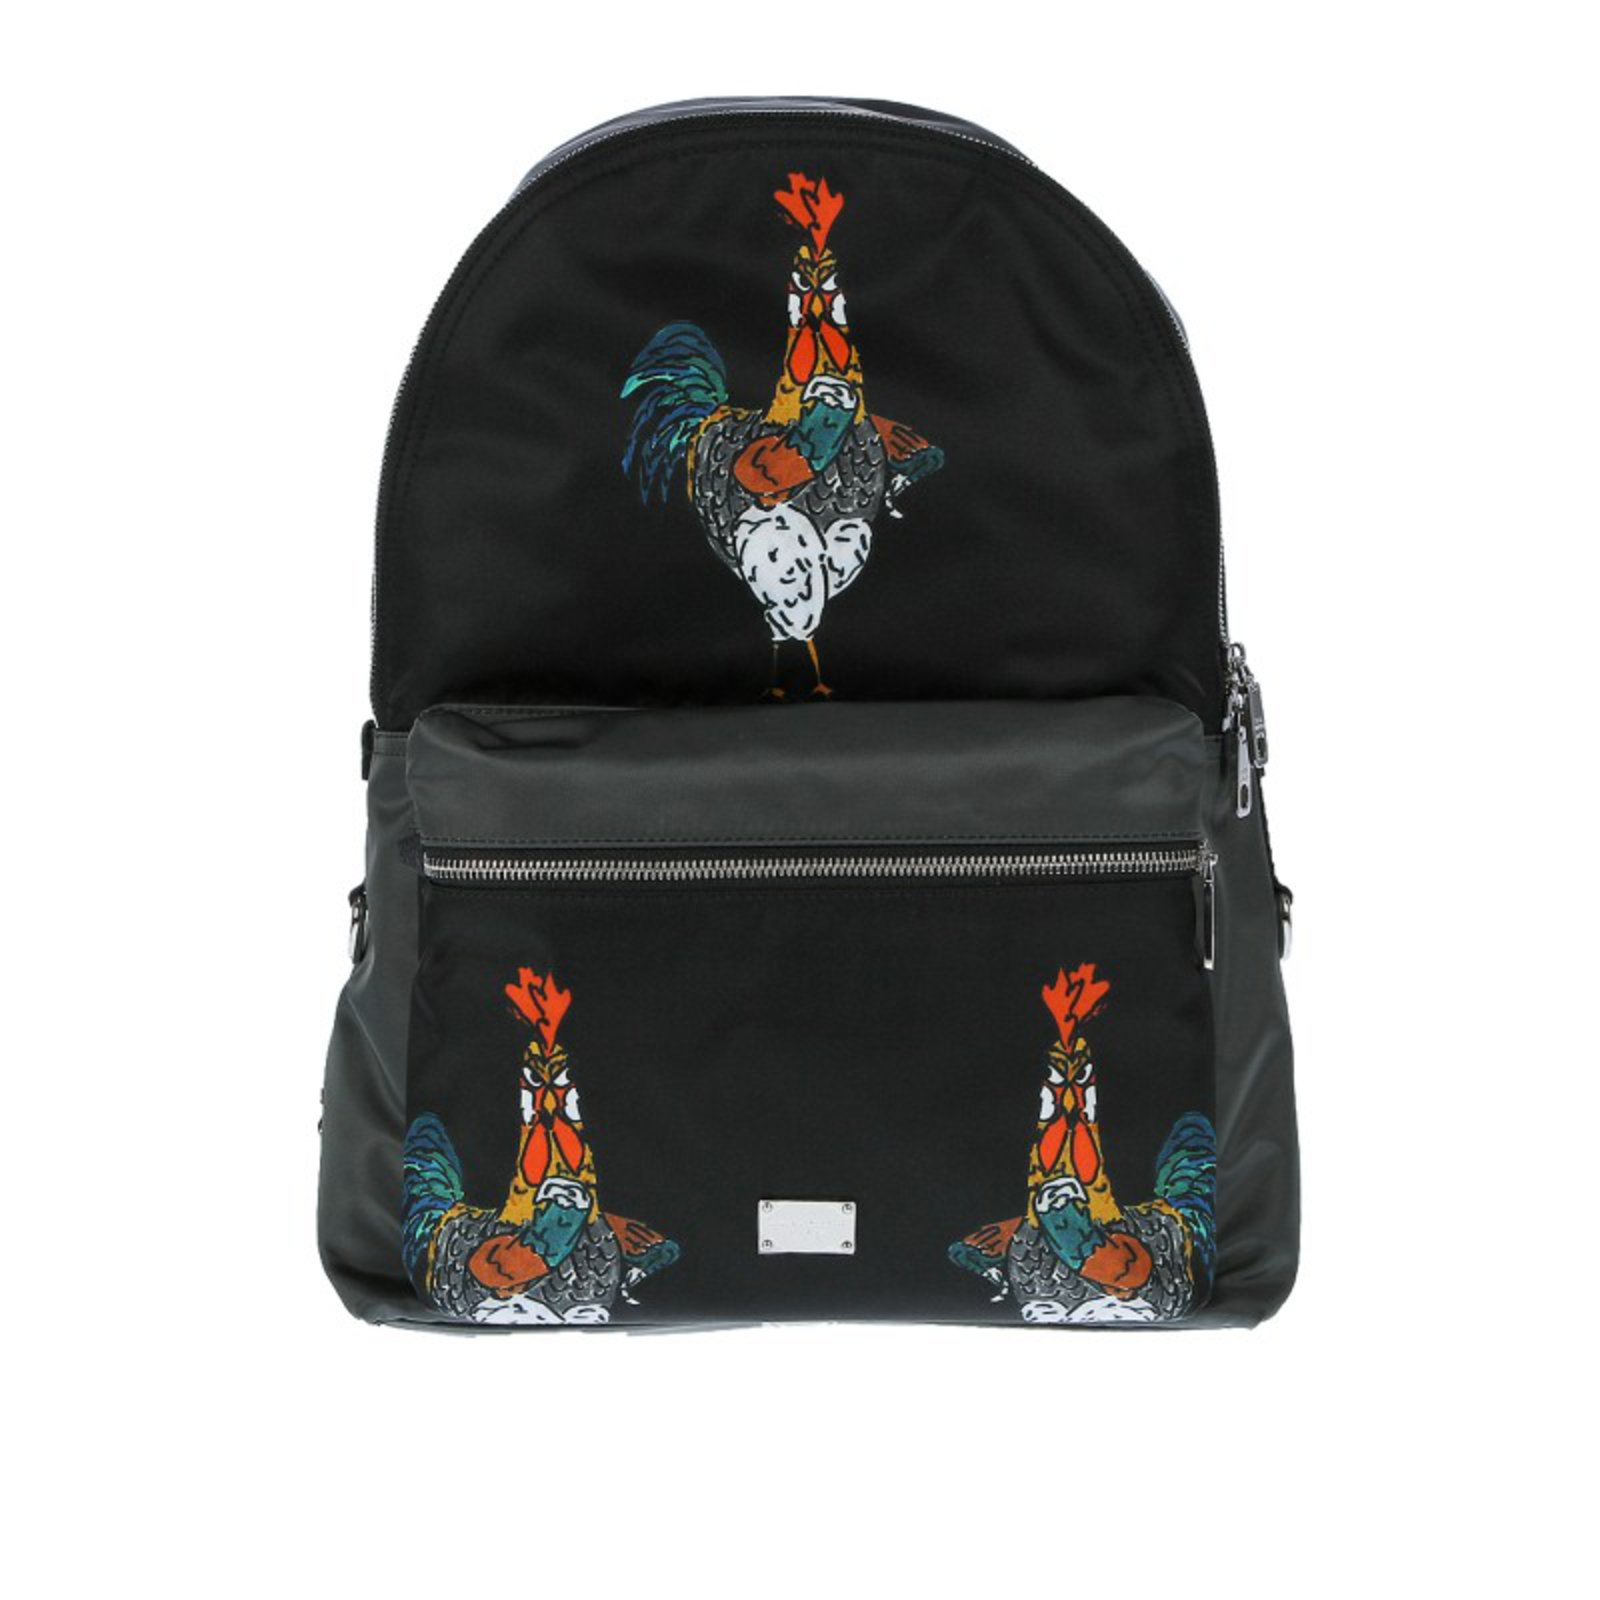 e027240d8be9 Dolce   Gabbana backpack new Bags Briefcases Nylon Black ref.73209 ...